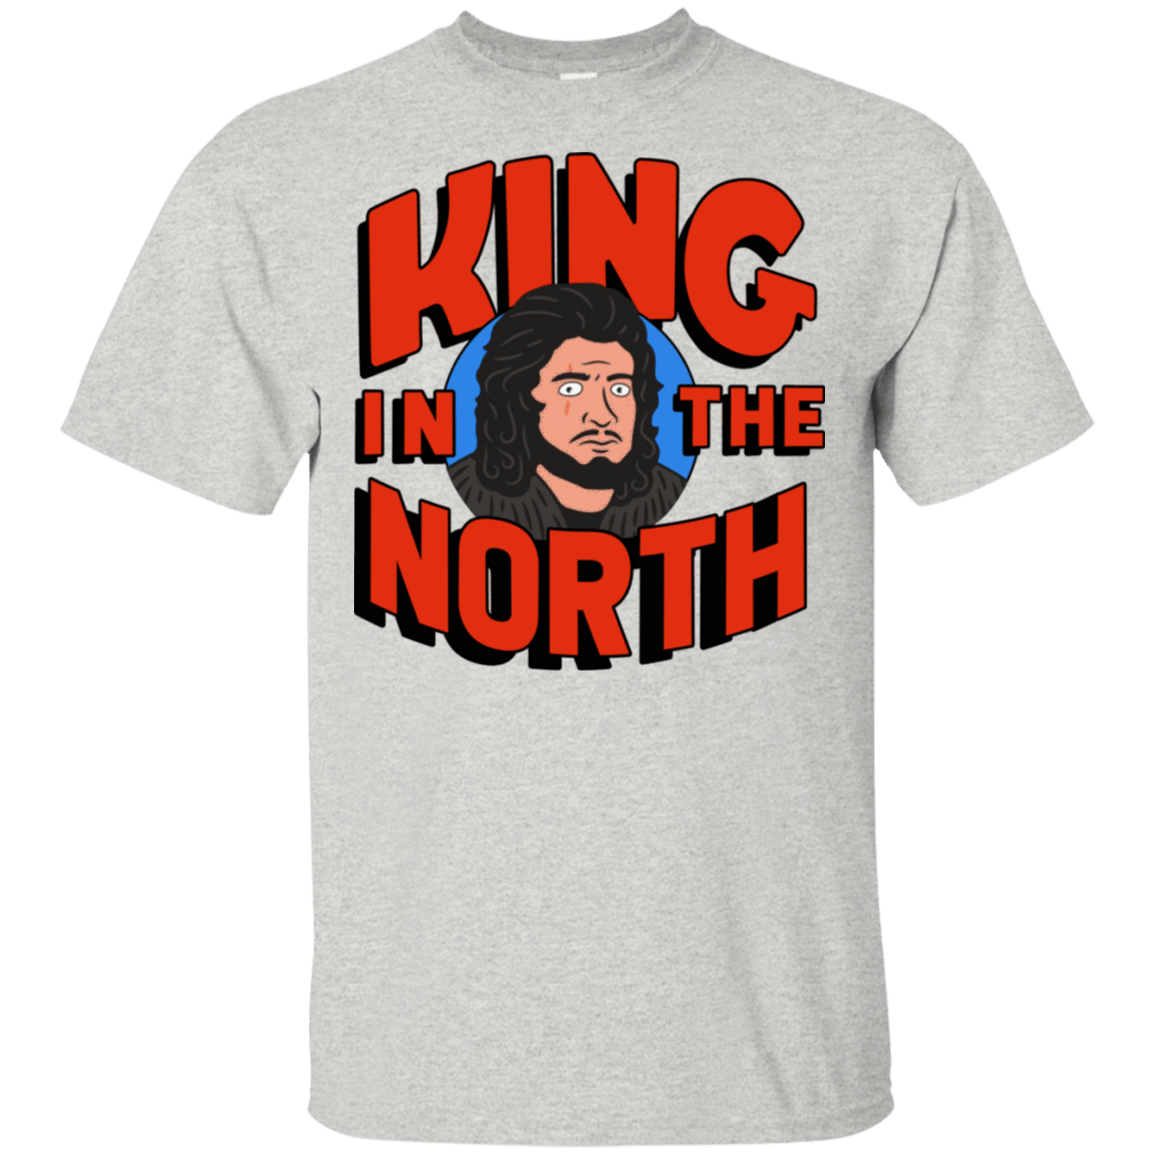 King In The North 22-2475-73154811-12568 - Tee Ript